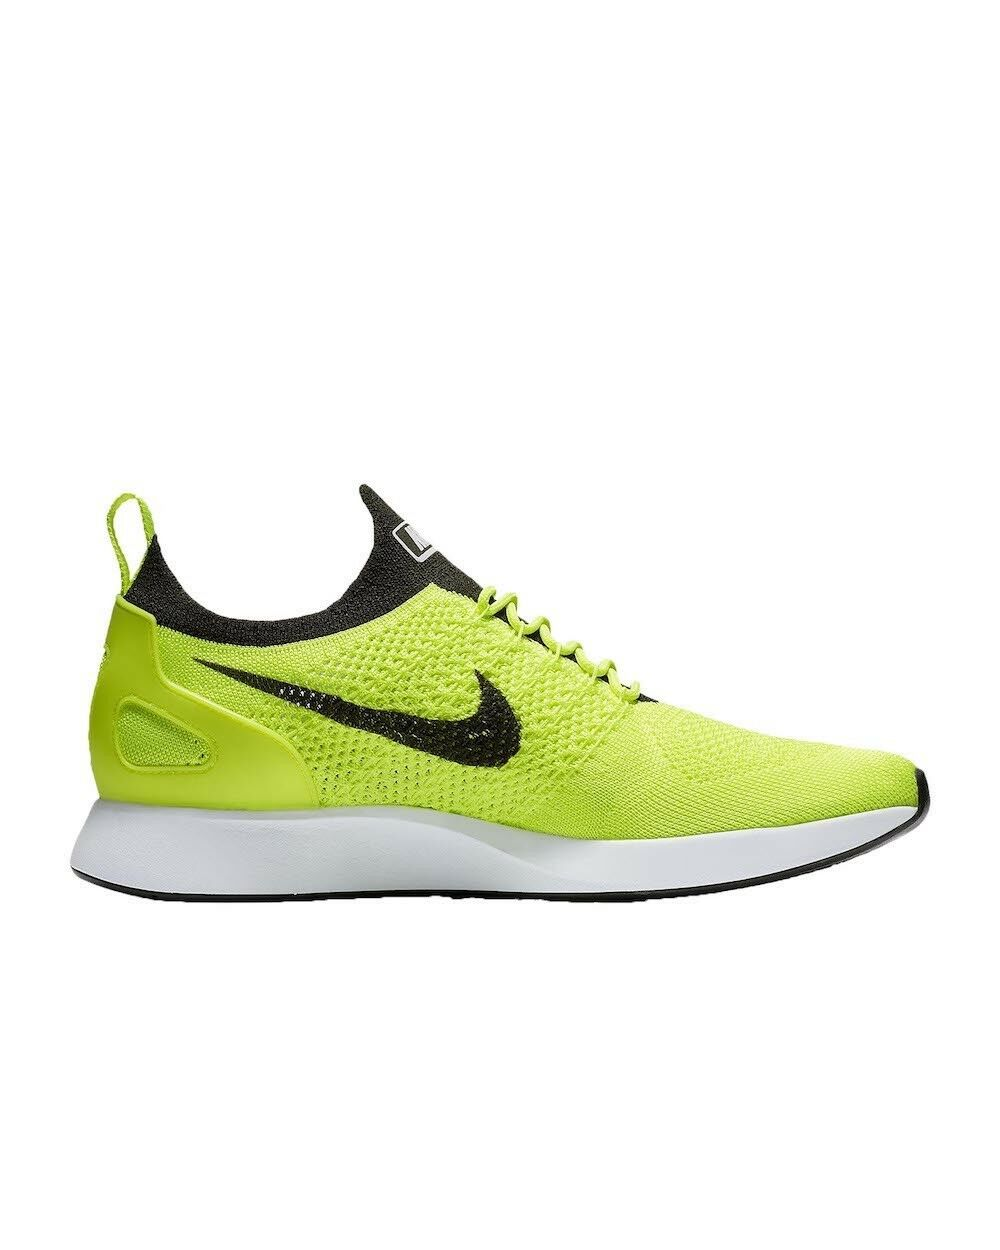 Nike Mens Air Zoom Mariah Flyknit Racer Running Shoe